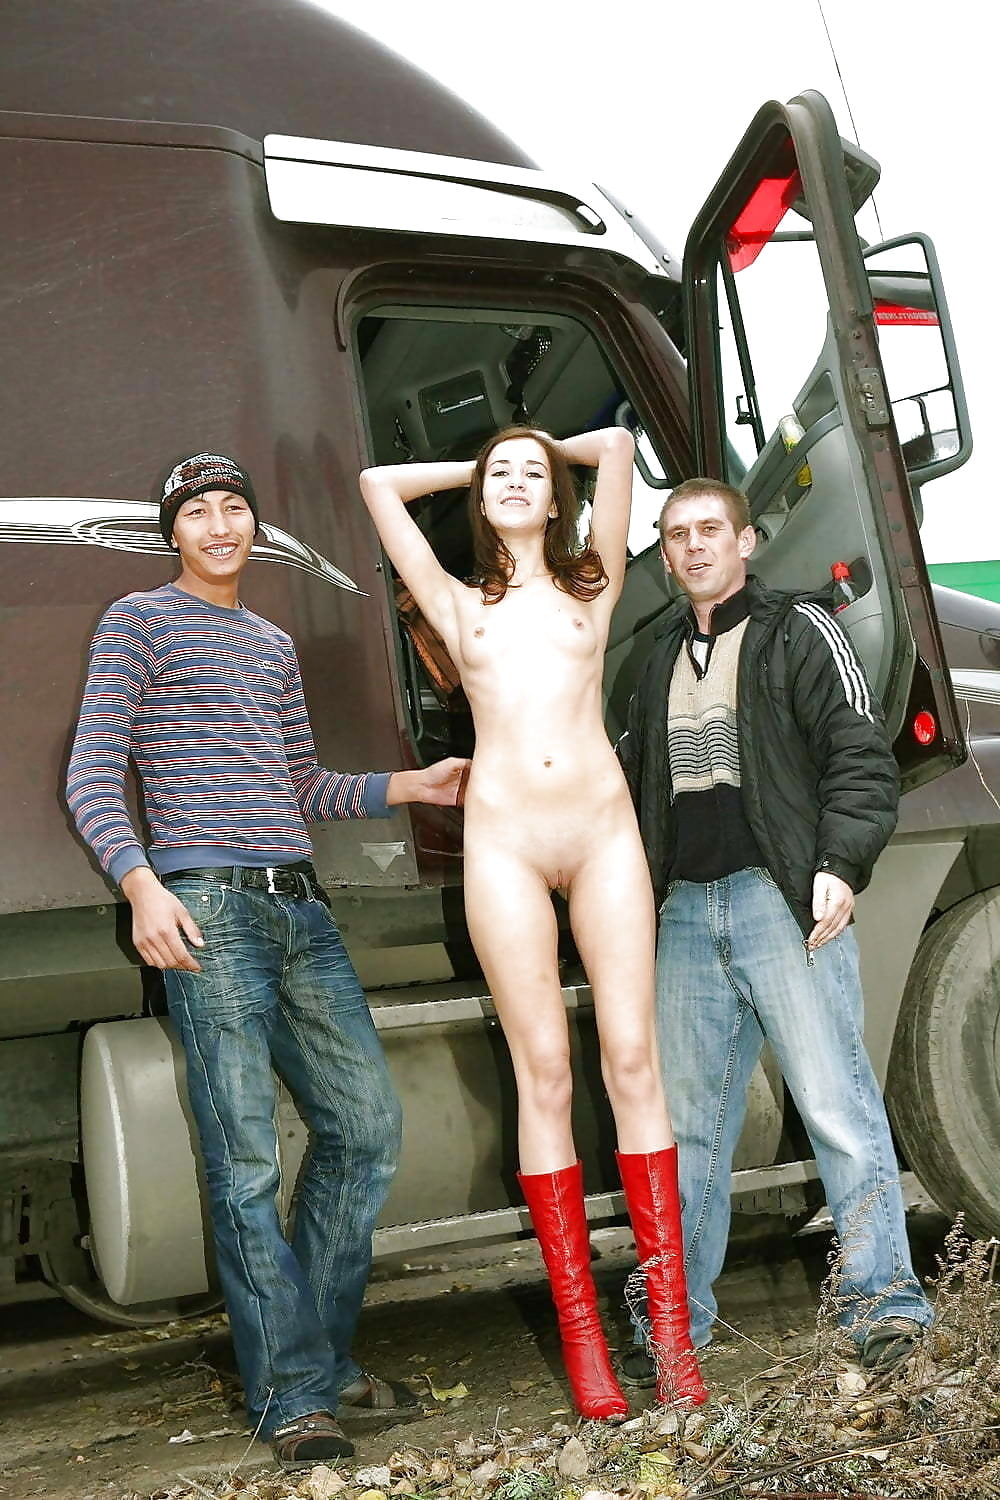 boy-free-nude-in-road-sex-woman-ass